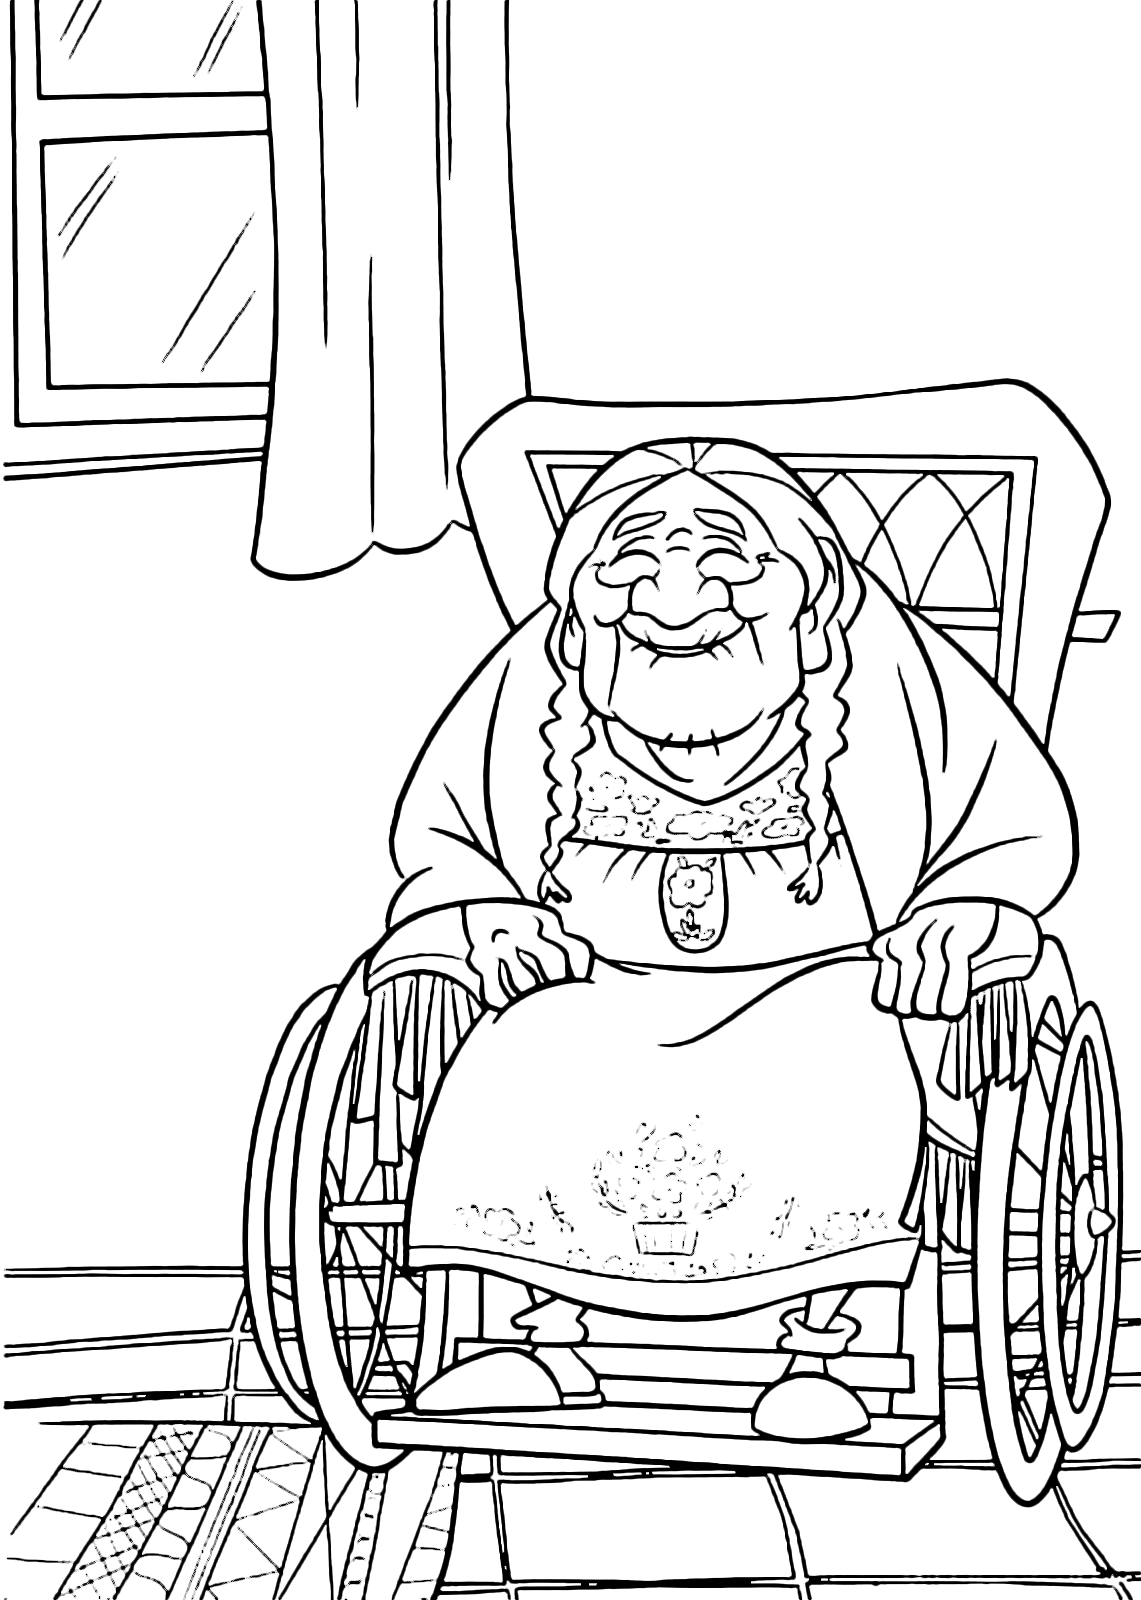 coco coloring page coco the great grandmother of miguel - Coloring Page Coco